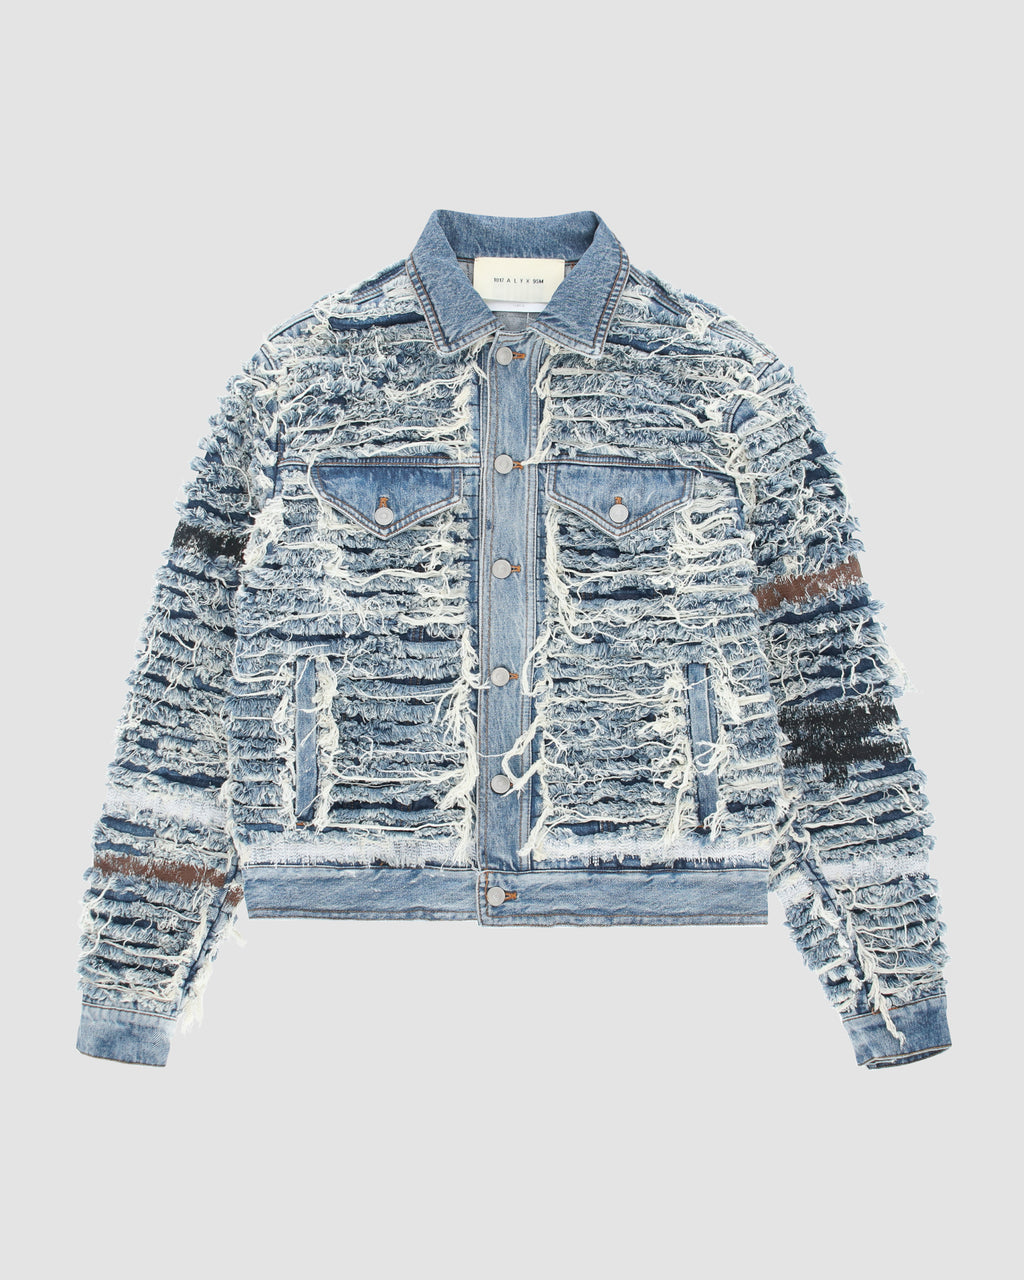 DENIM JACKET BLACKMEANS PRE-ORDER